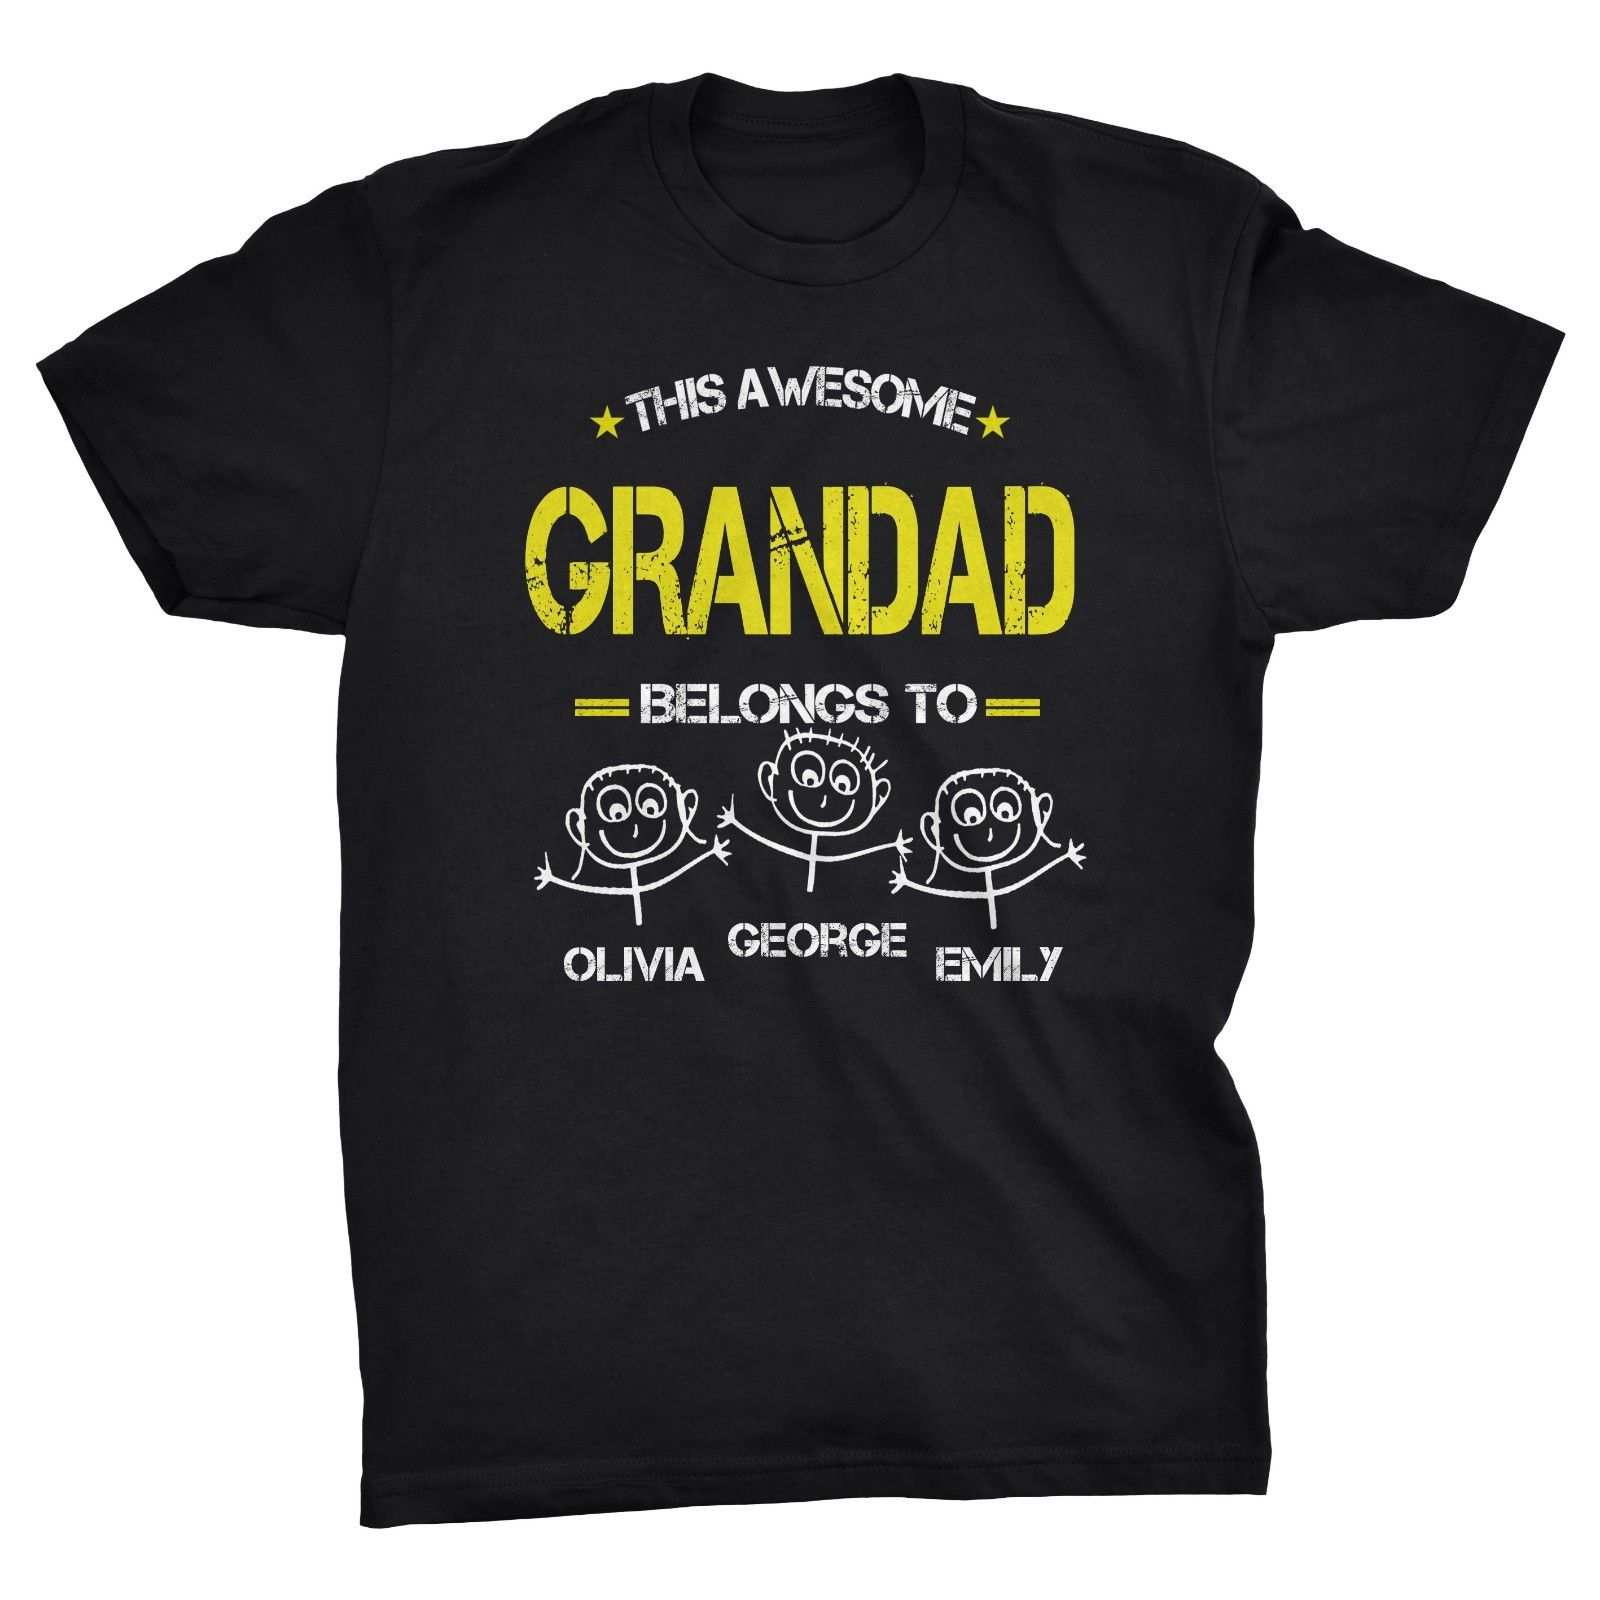 THIS AWESOME GRANDAD BELONGS TO... Personalised Fathers Day Cute T-shirt